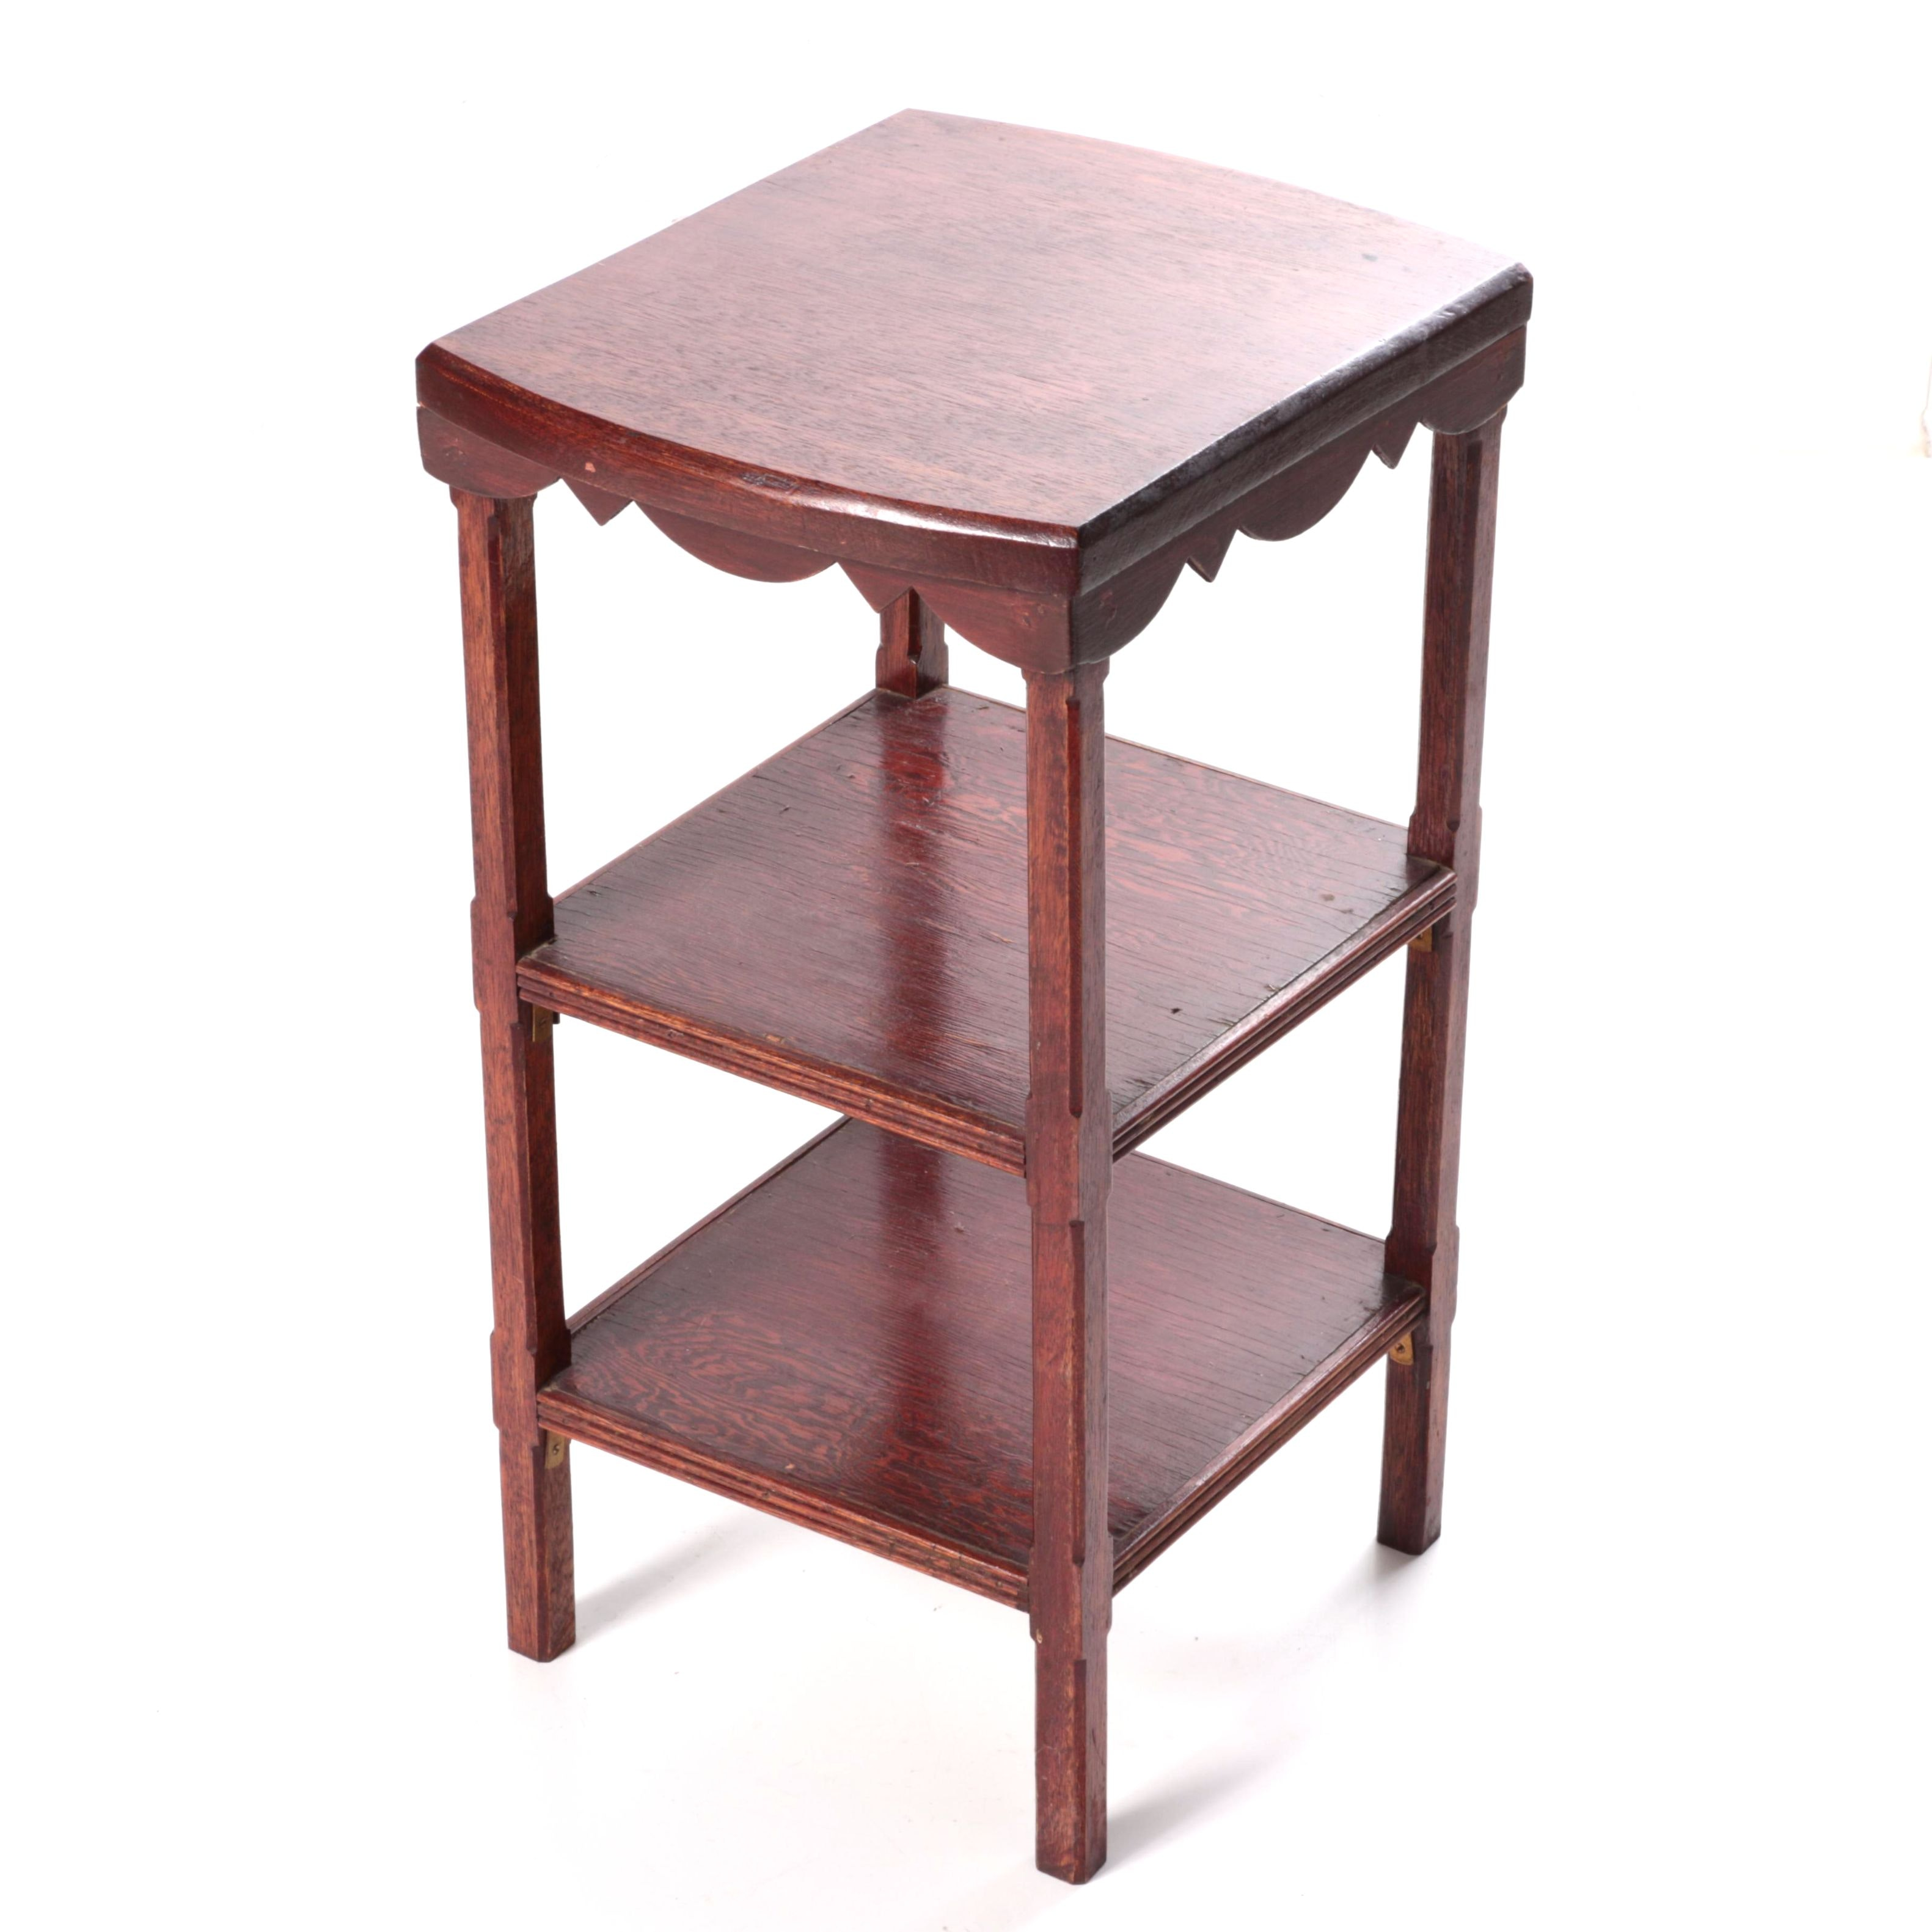 Vintage Walnut Three-Tier Accent Table